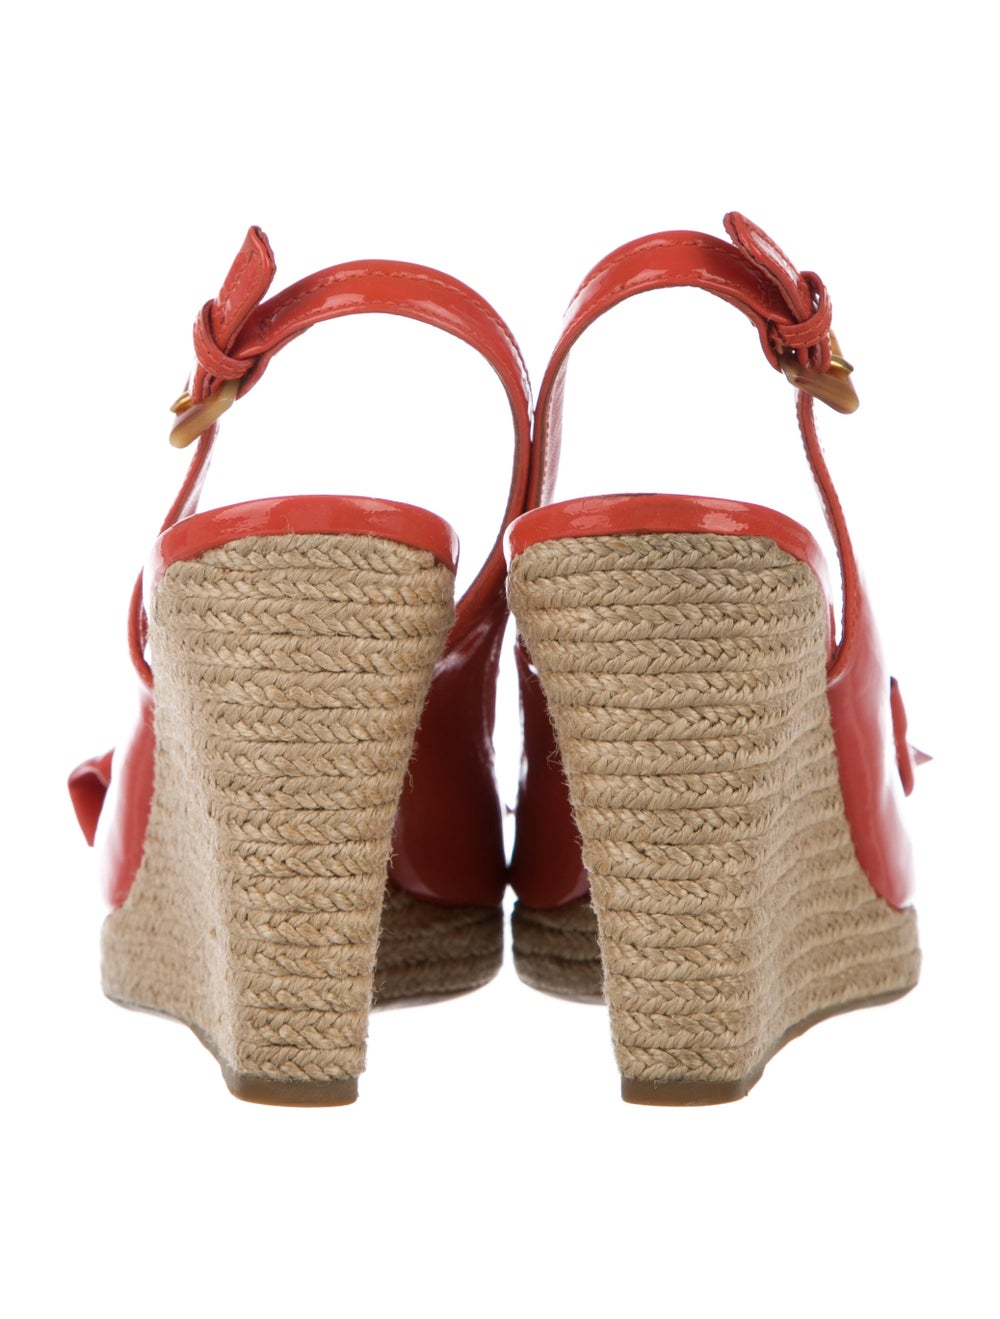 Prada Sport Patent Leather Bow Accents Espadrille… - image 4